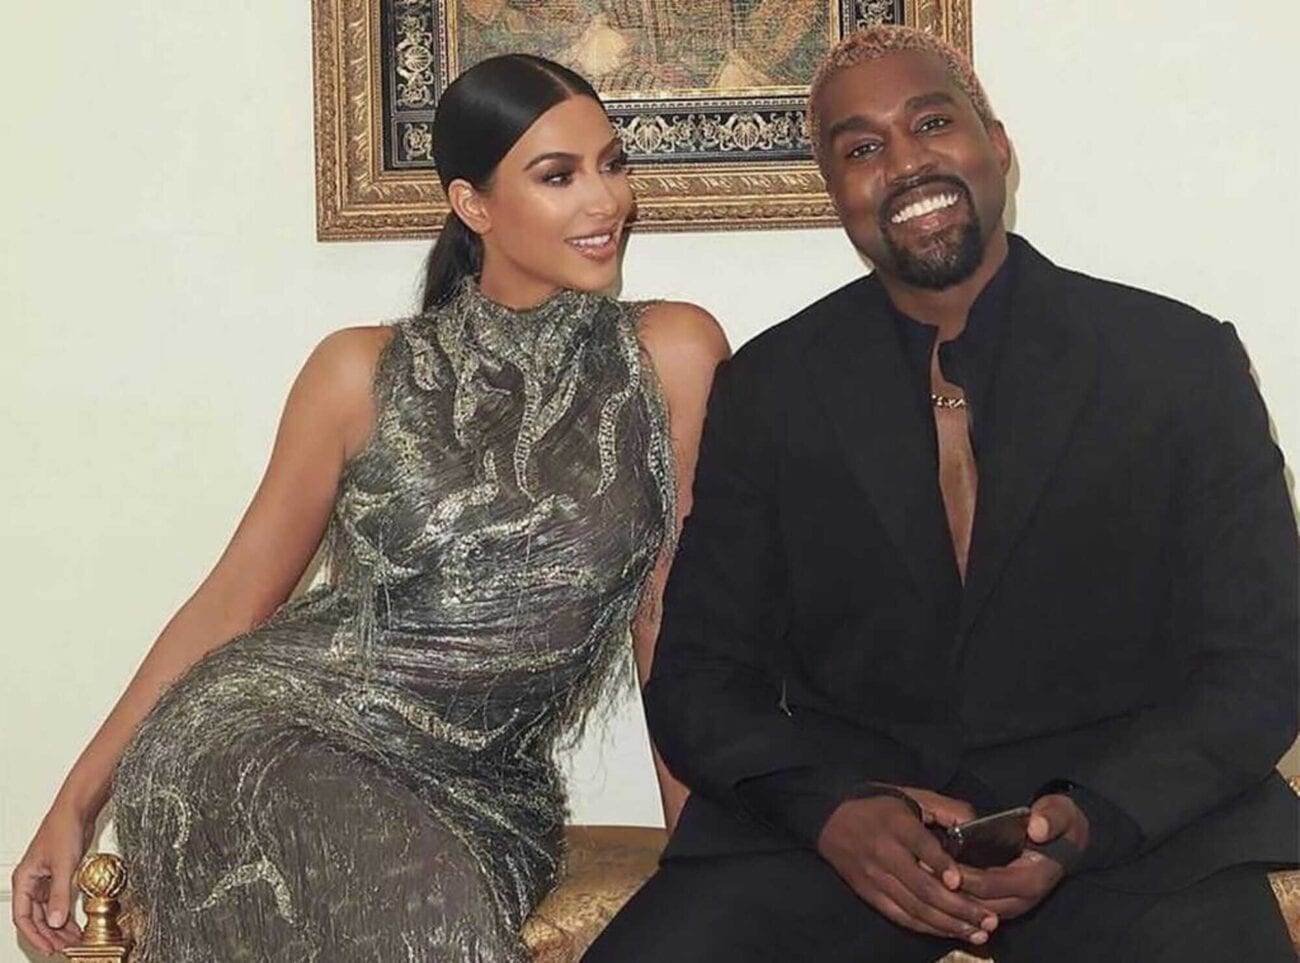 Kim Kardashian & husband Kanye West are officially getting divorced, but how much will be shown in the final season of 'KUWTK'? Find out the deets here.